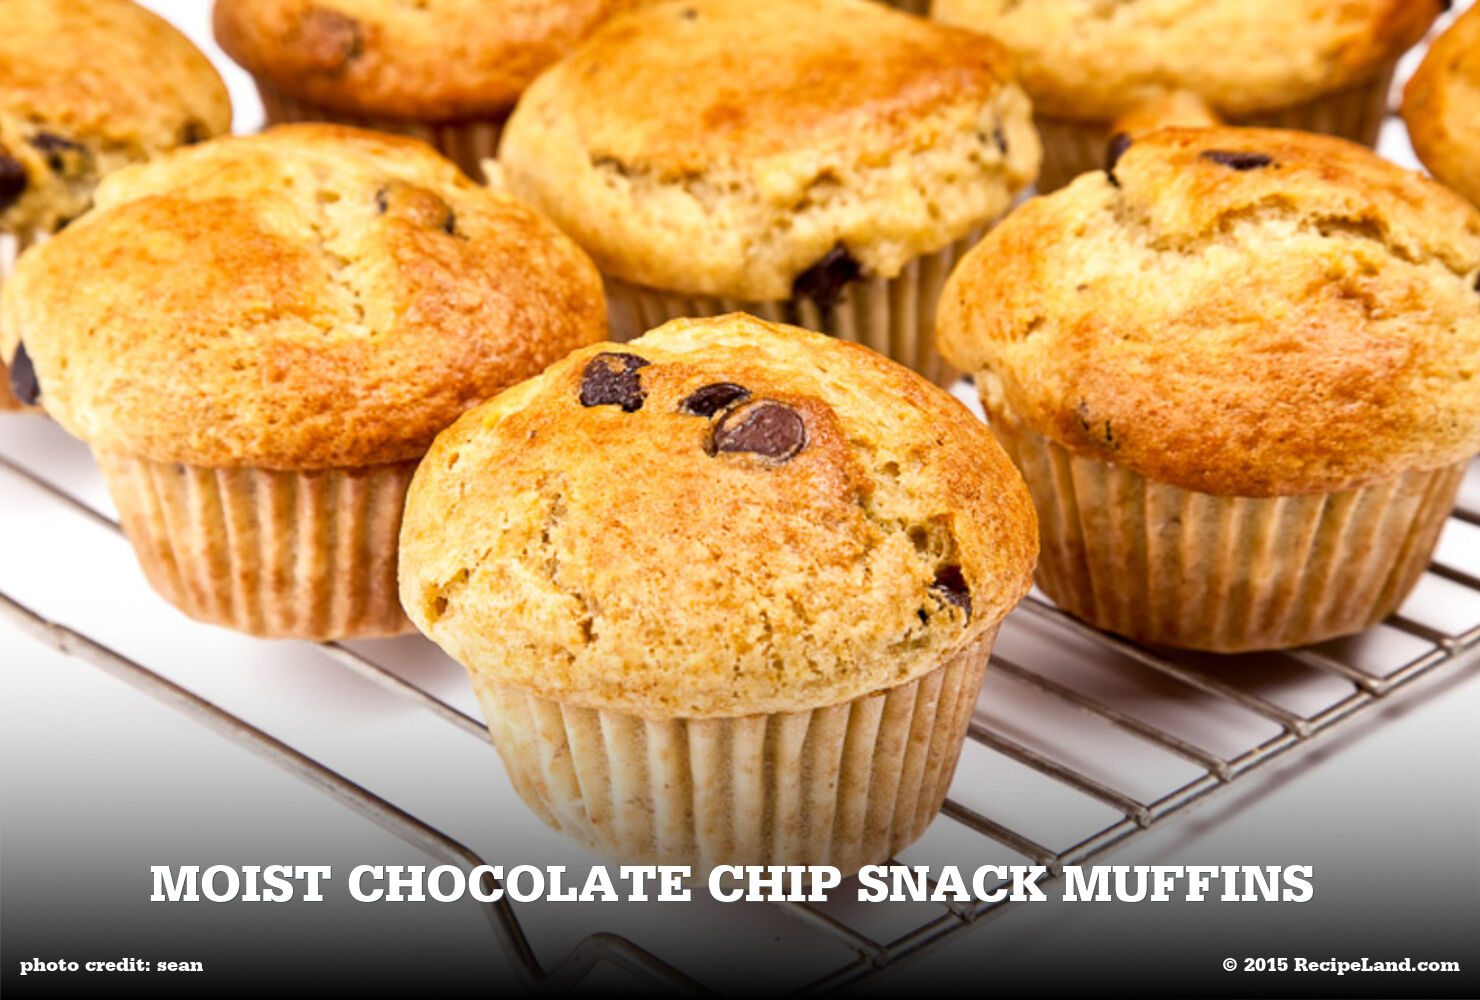 Moist Chocolate Chip Snack Muffins